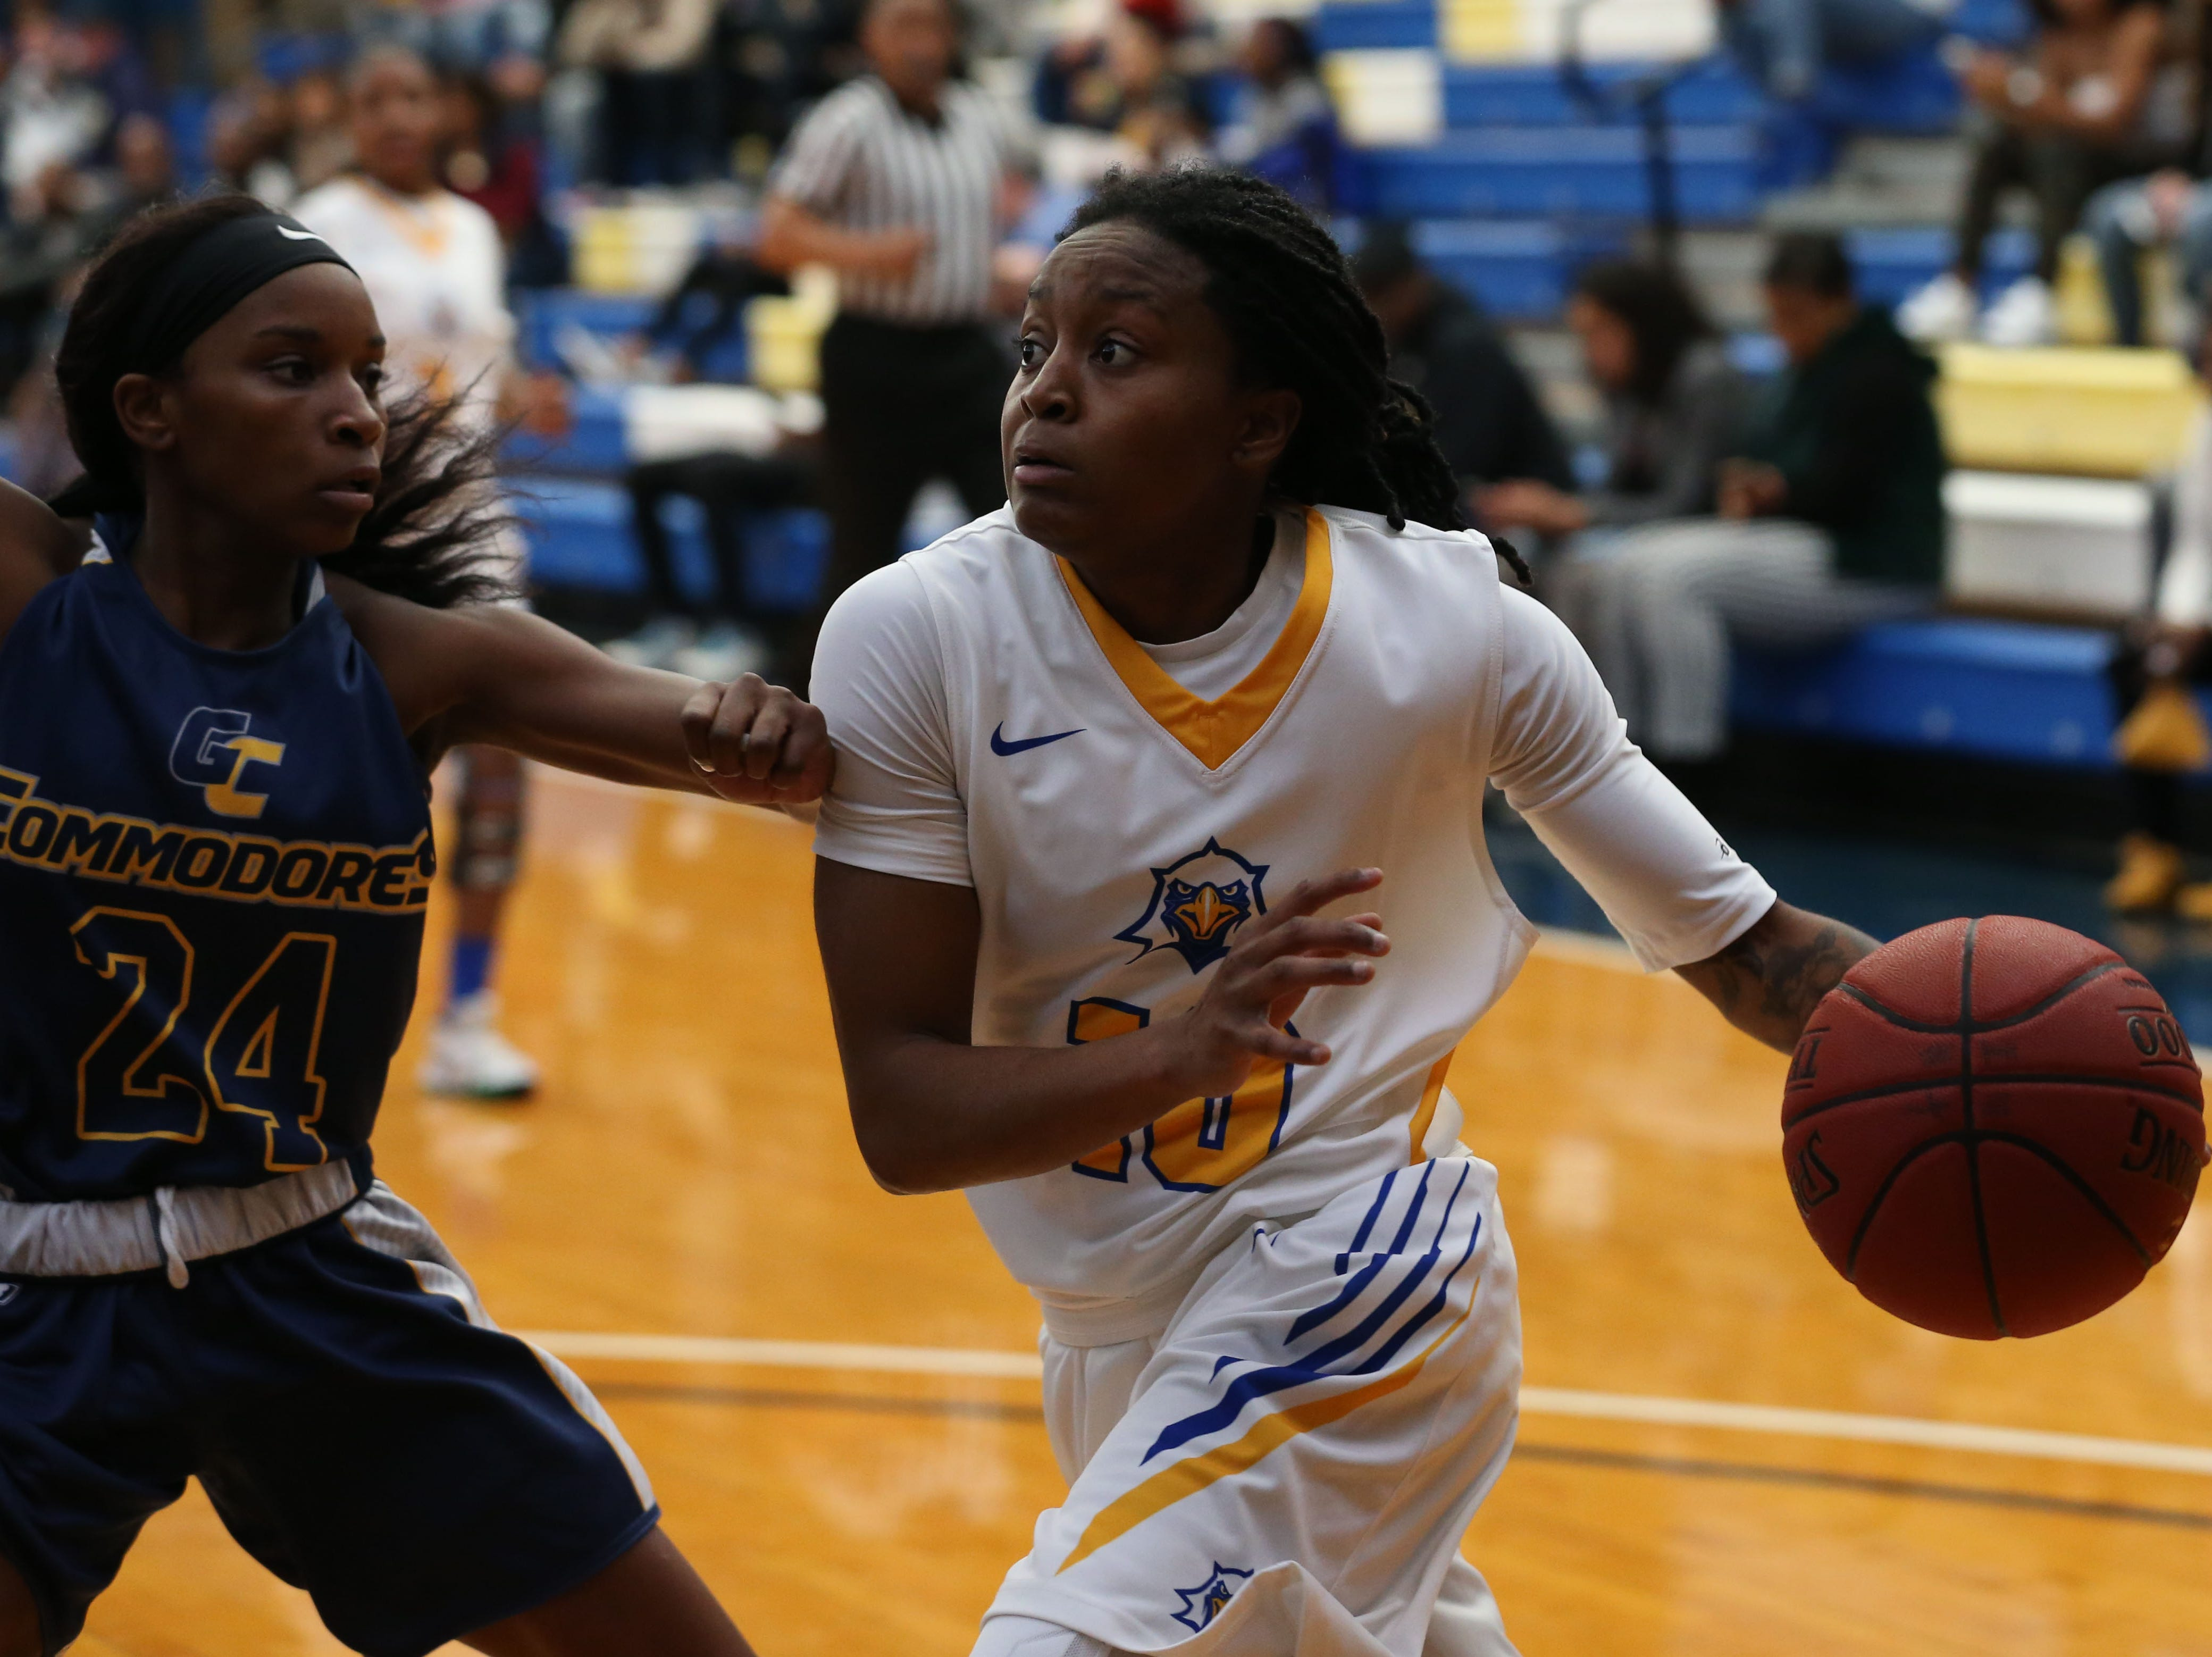 Tallahassee Community College Eagles guard Tameria Johnson (10) goes for a layup. The Tallahassee Community College Eagles host the Gulf Coast State College Commodores in a conference match-up in the Eagledome, Saturday, Jan. 5, 2019.